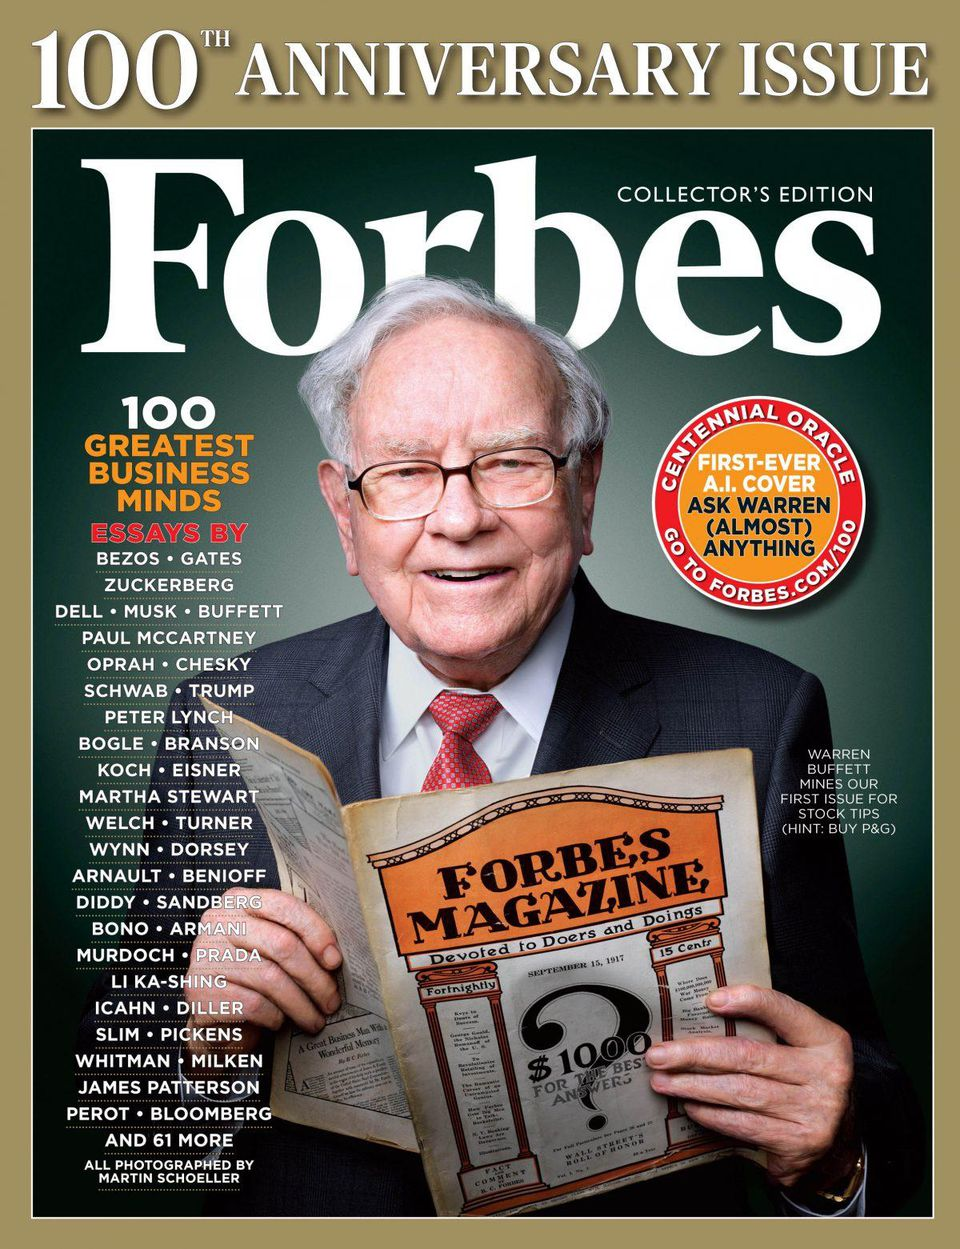 https___blogs-images.forbes.com_forbespr_files_2017_09_Forbes-Centennial-Issue-Cover_Buffett-2017-1200x1561